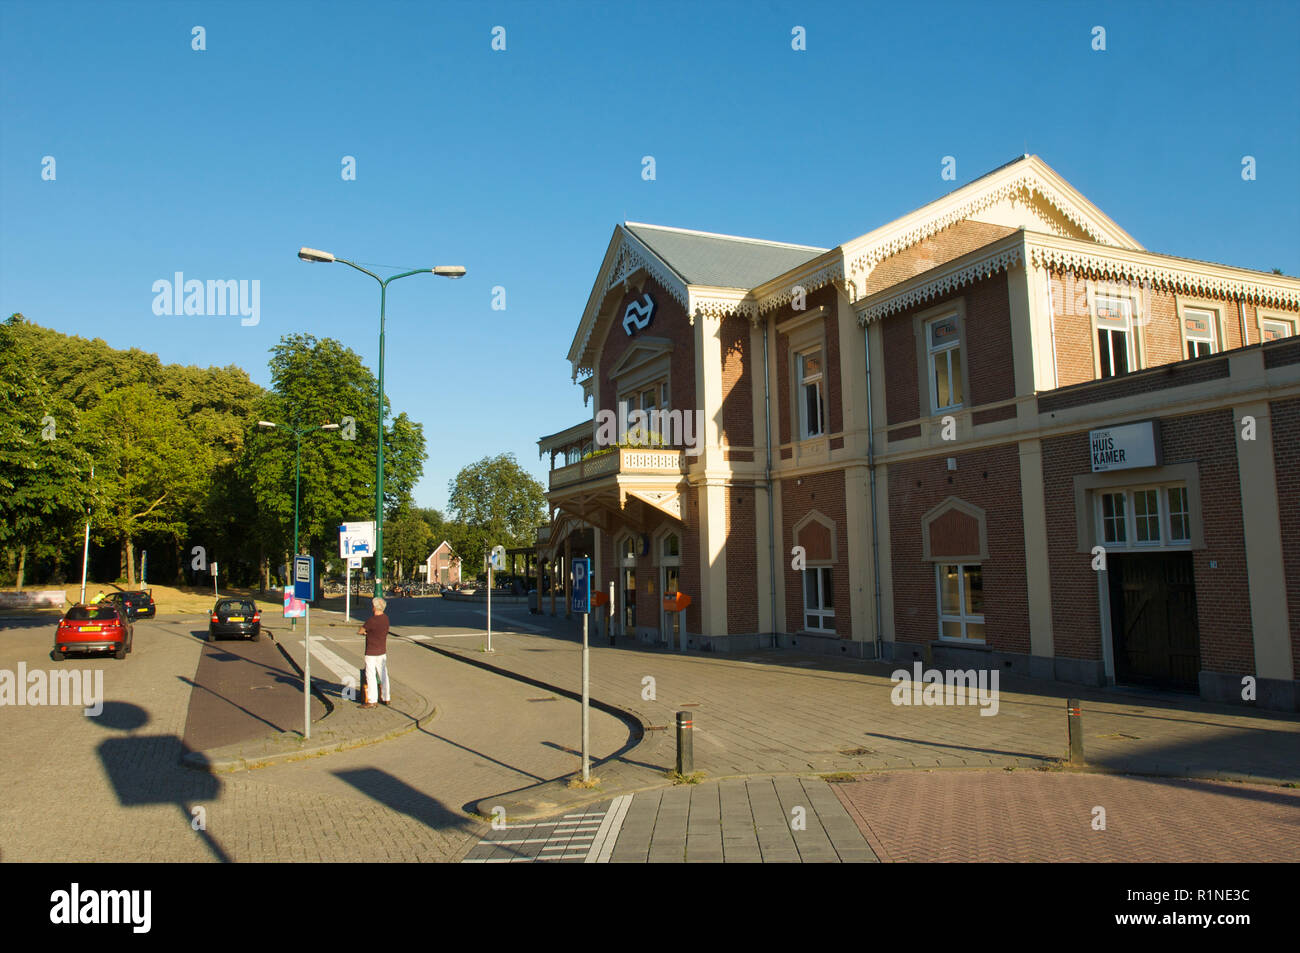 The front side of the historic railway station in Baarn with a kiss and ride area used for the Dutch Royal family, the Netherlands - Stock Image